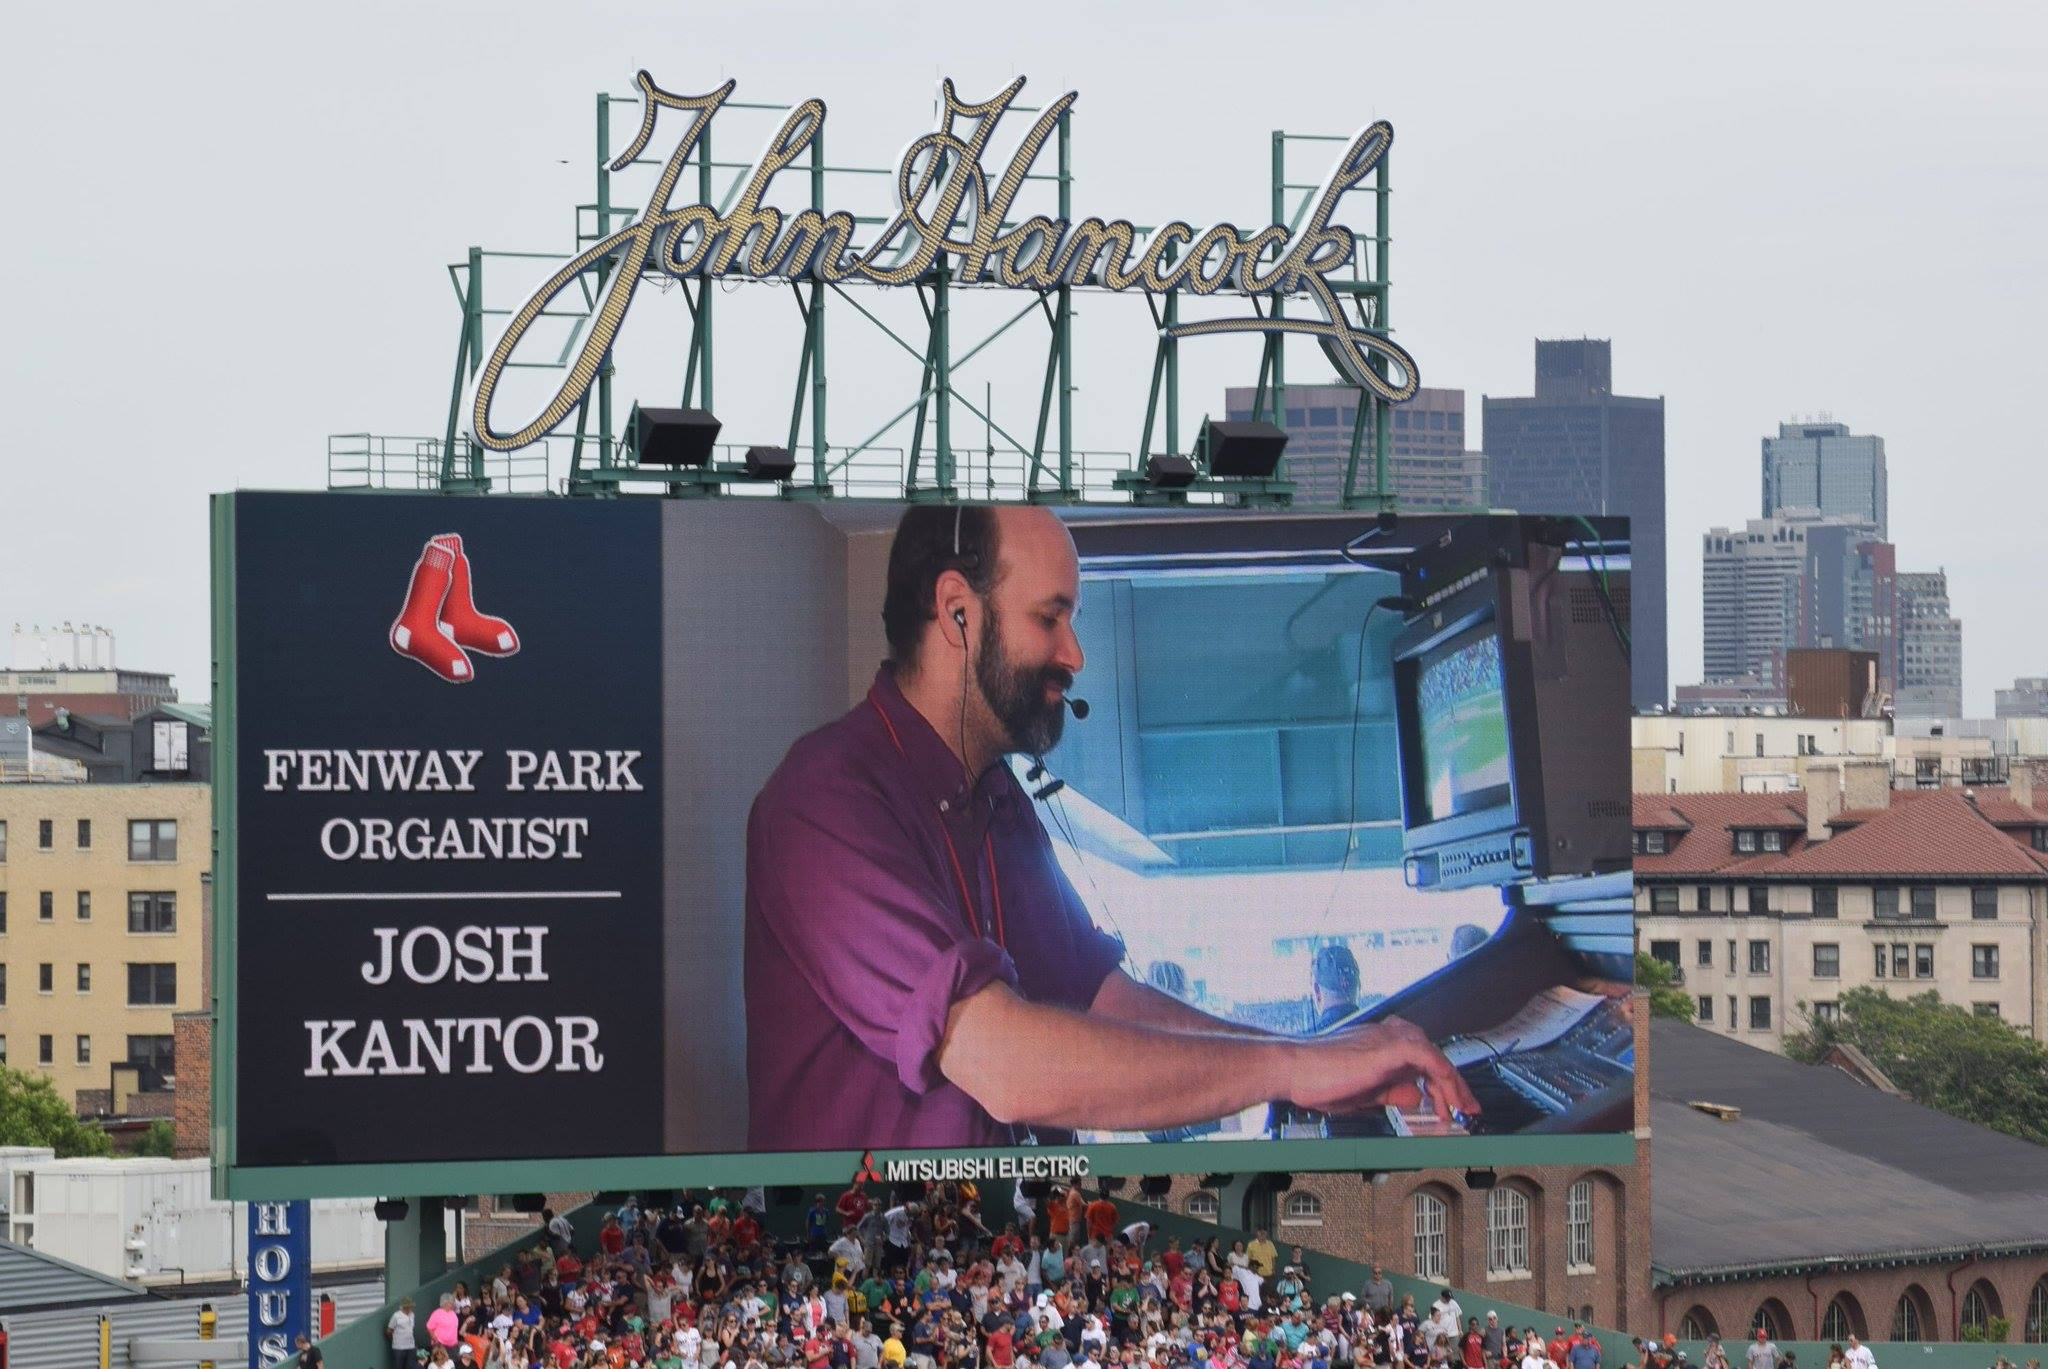 PODCAST EPISODE 013: Boston Red Sox Organist Josh Kantor